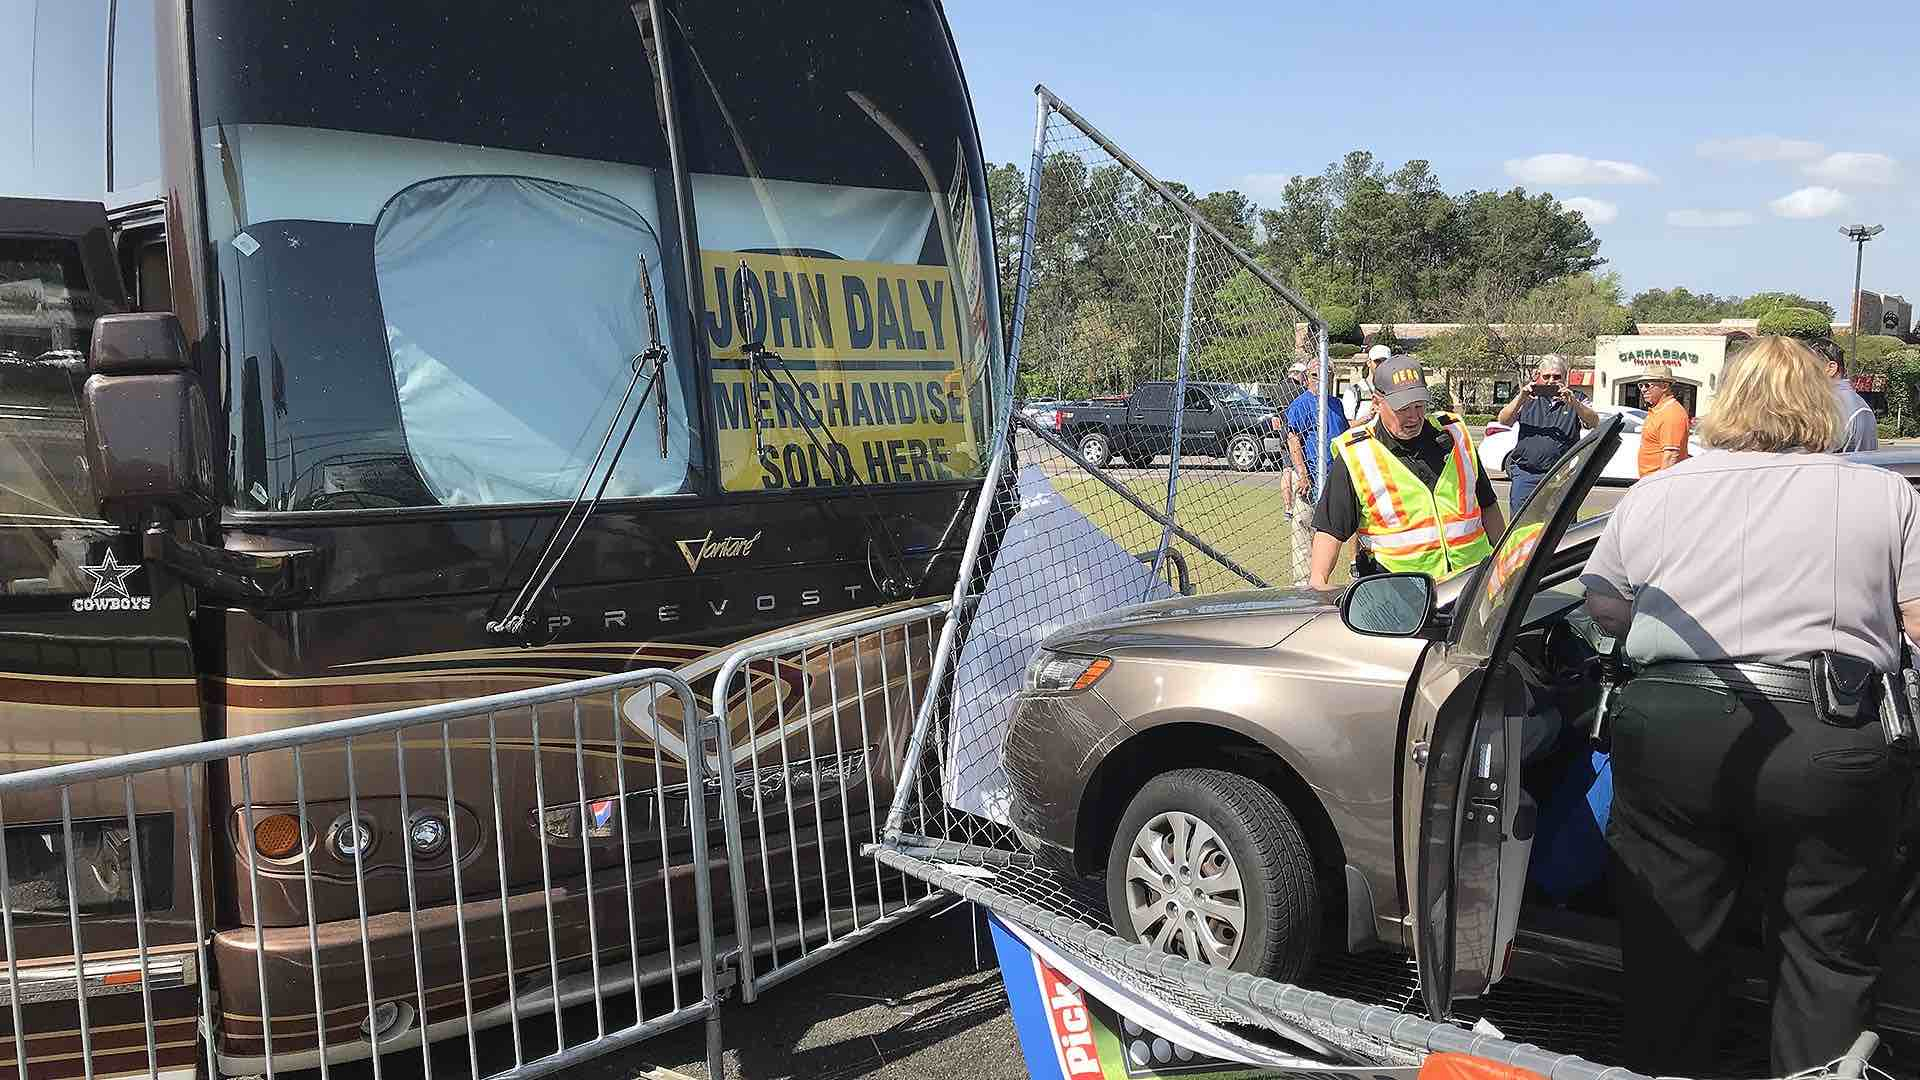 John Daly signs lady's bottom in Hooters' parking lot at Augusta